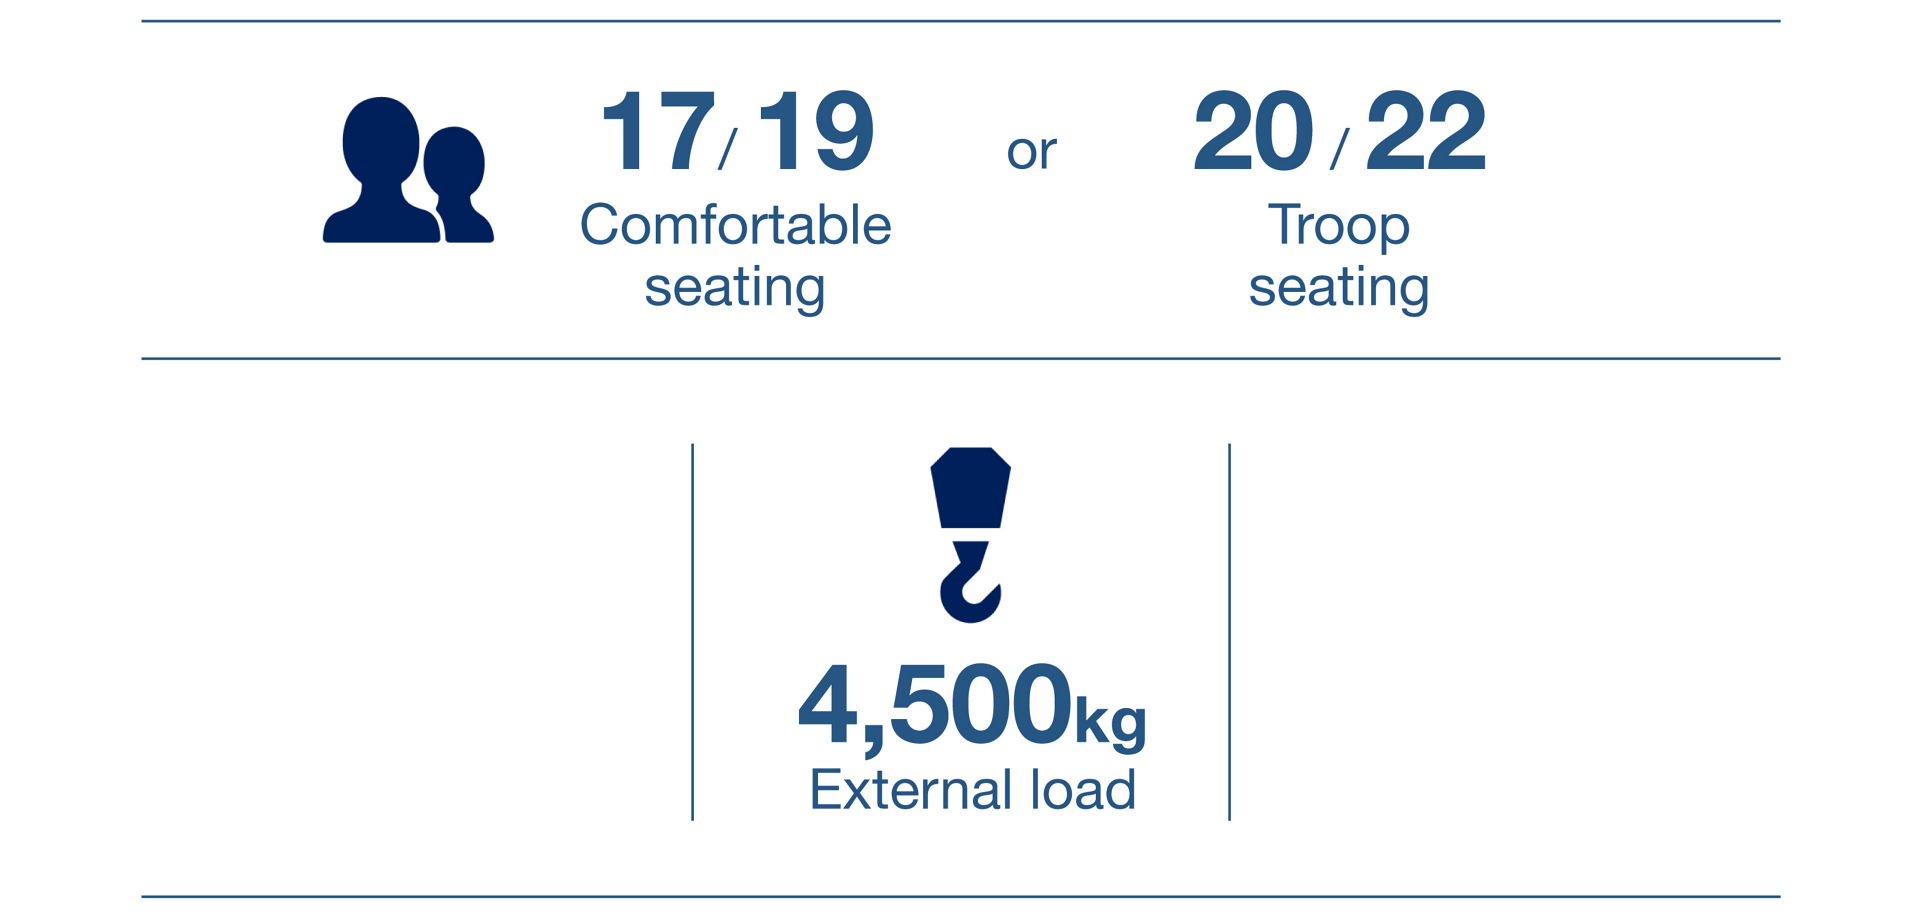 An infographic showing the payload lift performance for Airbus' H215 helicopter, plus two seating configurations.